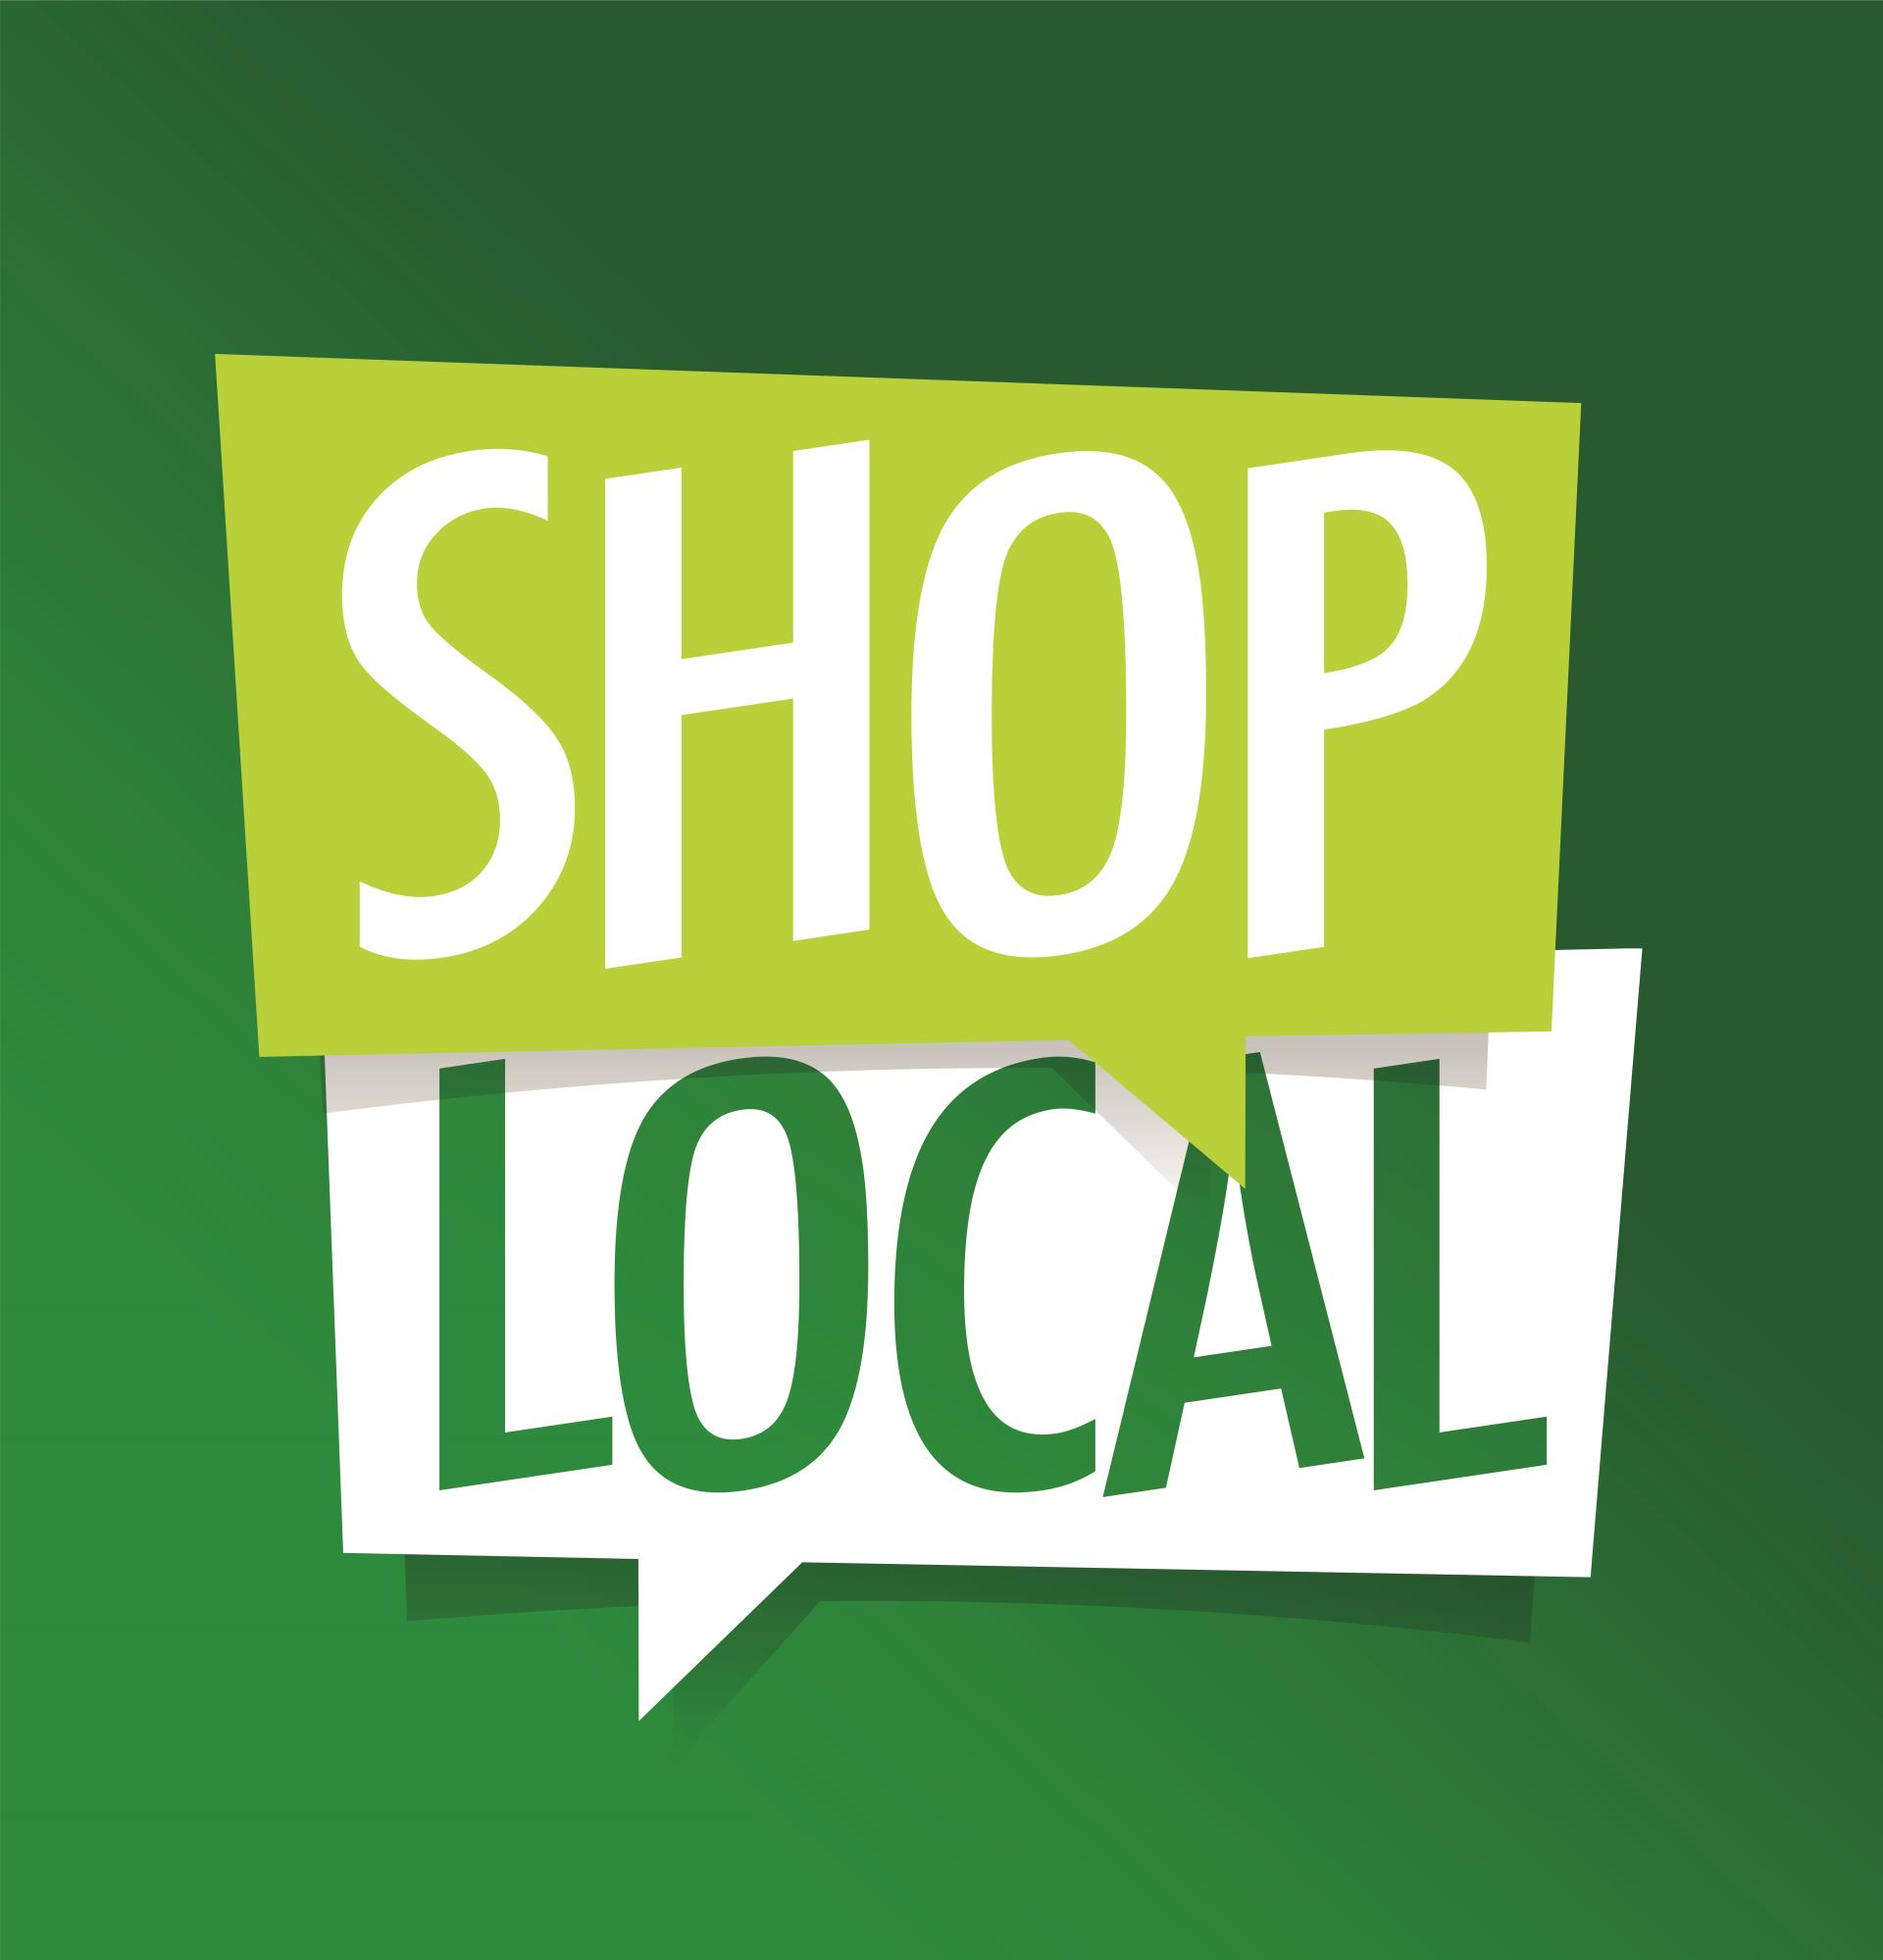 shop local green